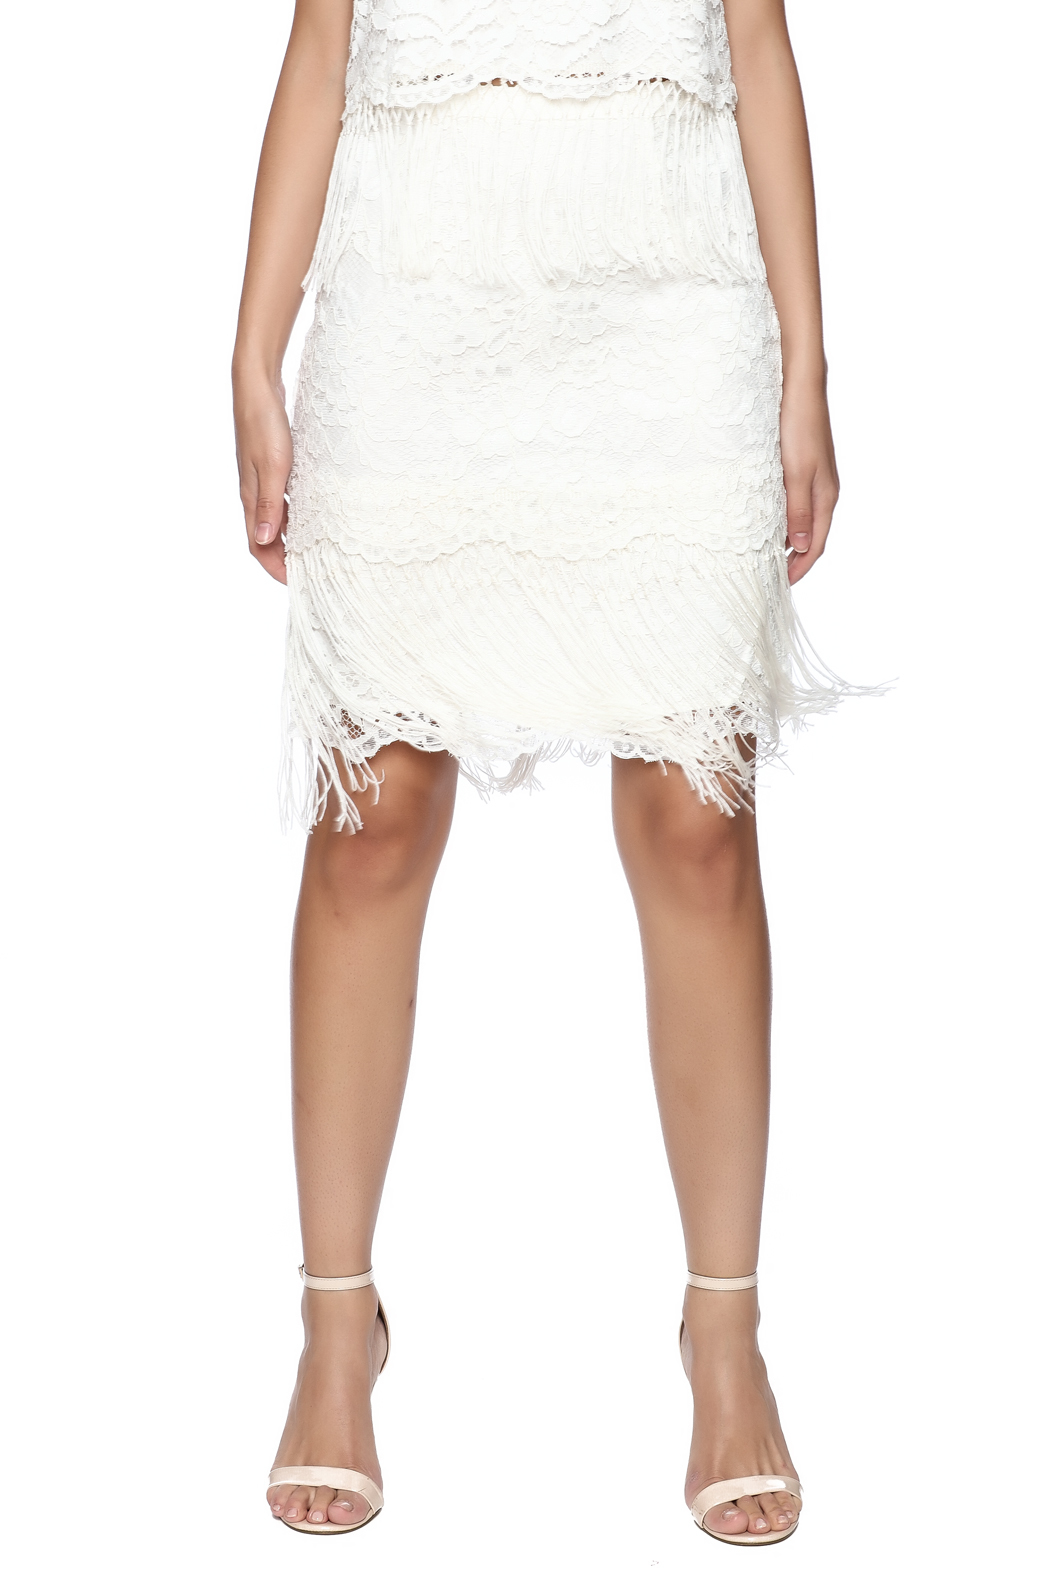 Ark & Co. Fringe Lace Skirt - Main Image